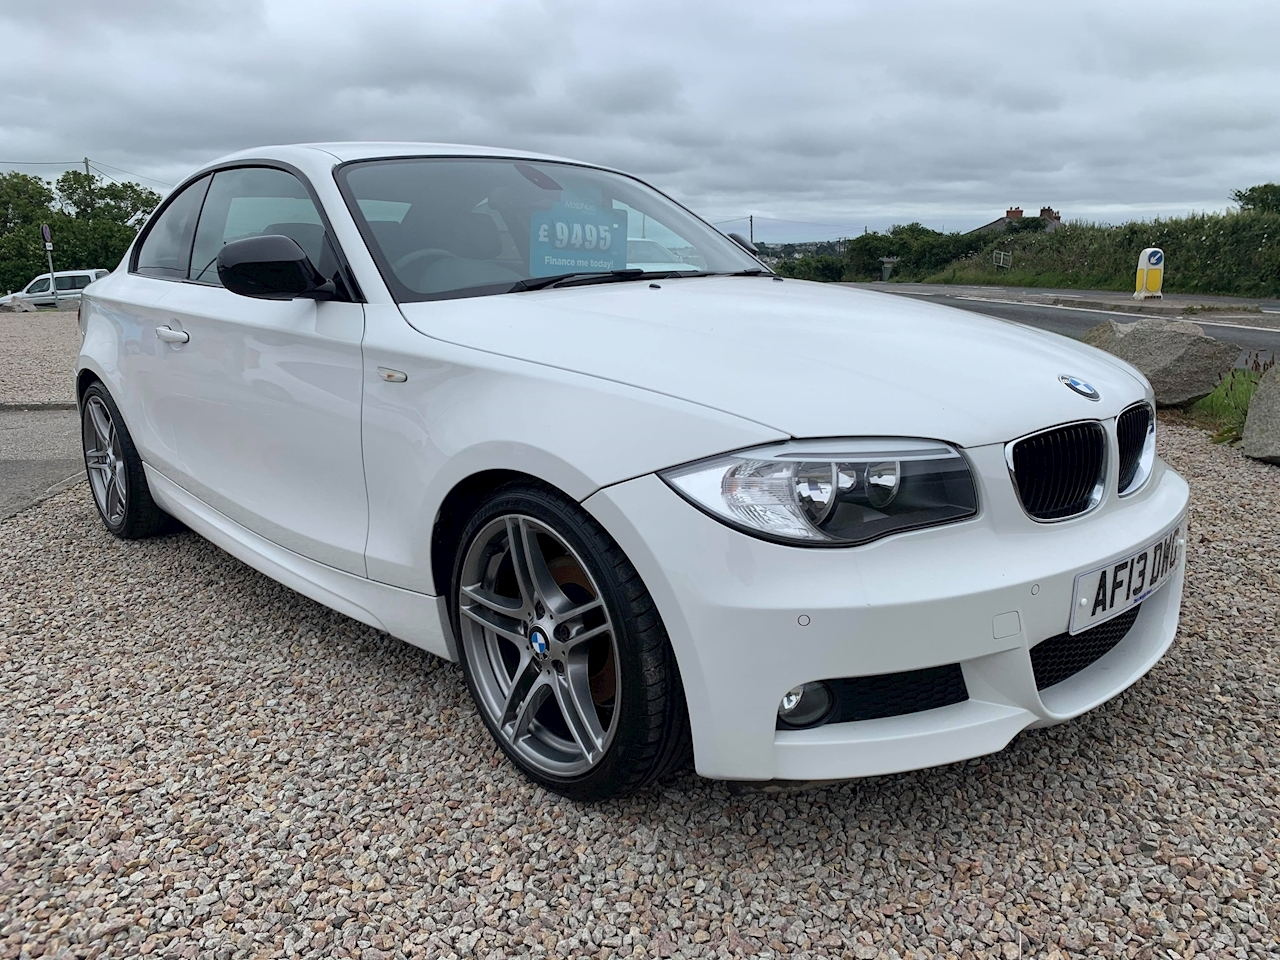 BMW 1 Series 118D Sport Plus Edition Coupe 2.0 Manual Diesel